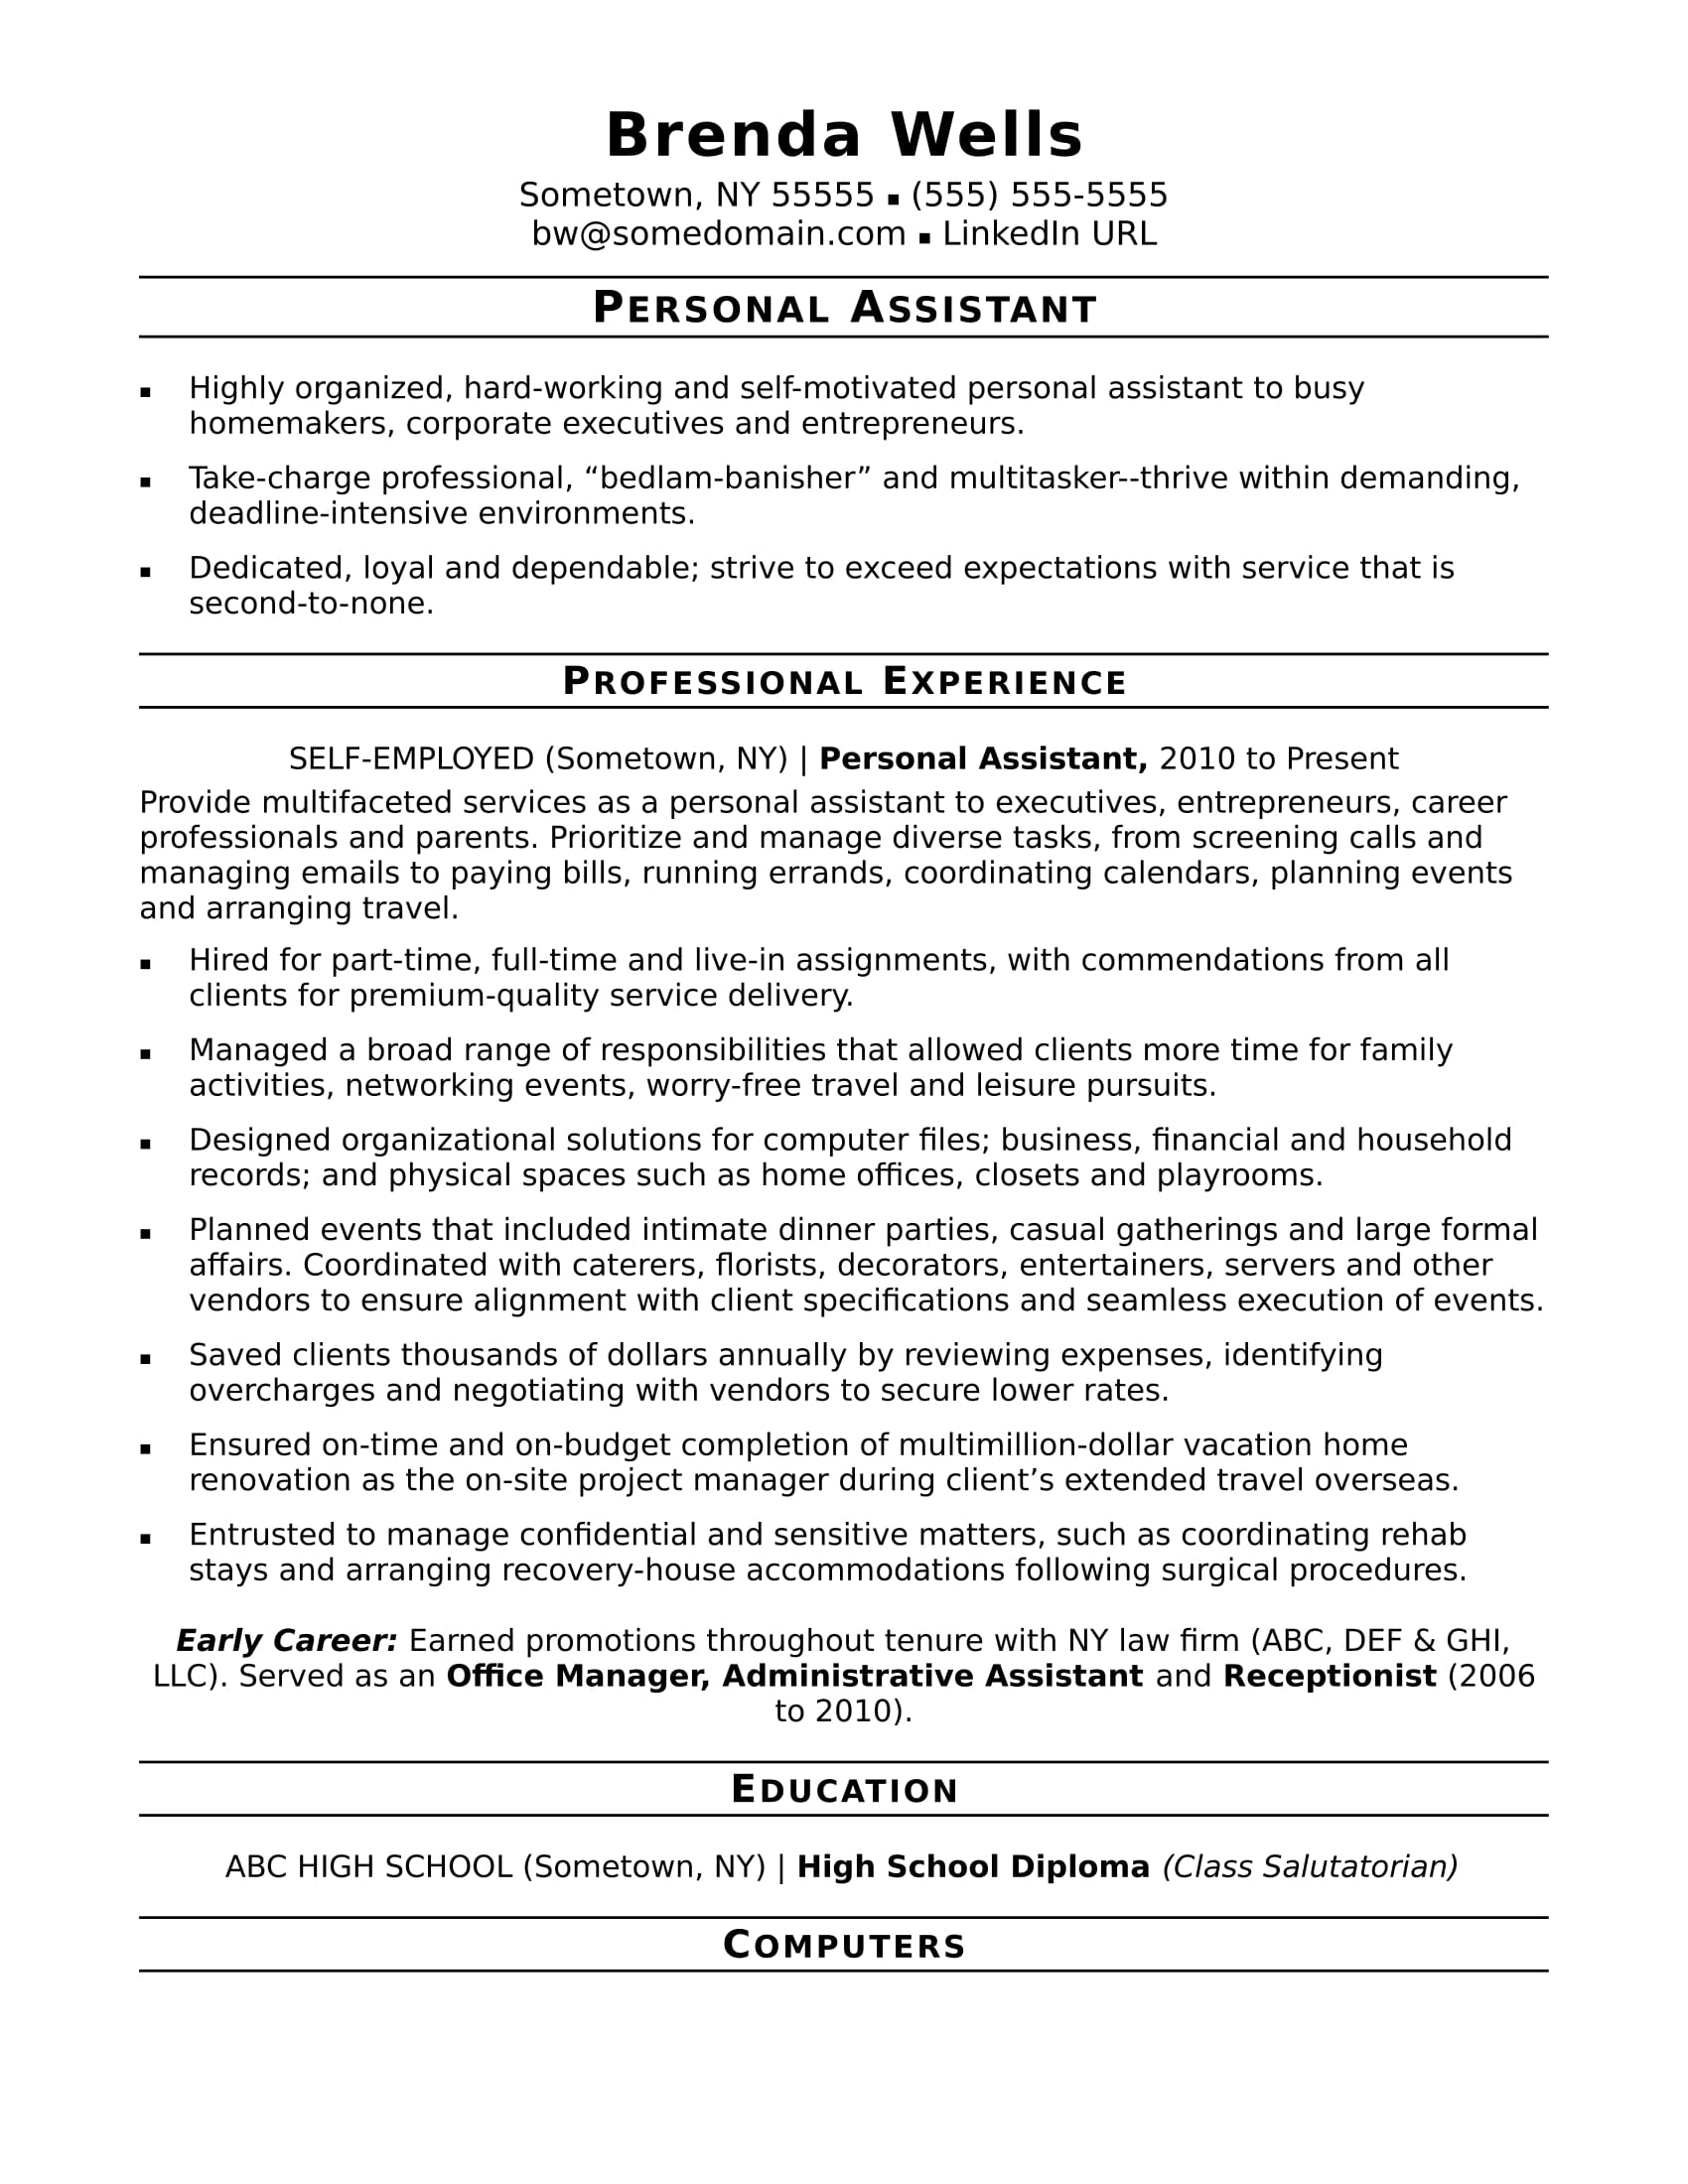 personal assistant resume sample monster self motivated language proficiency levels Resume Self Motivated Resume Sample